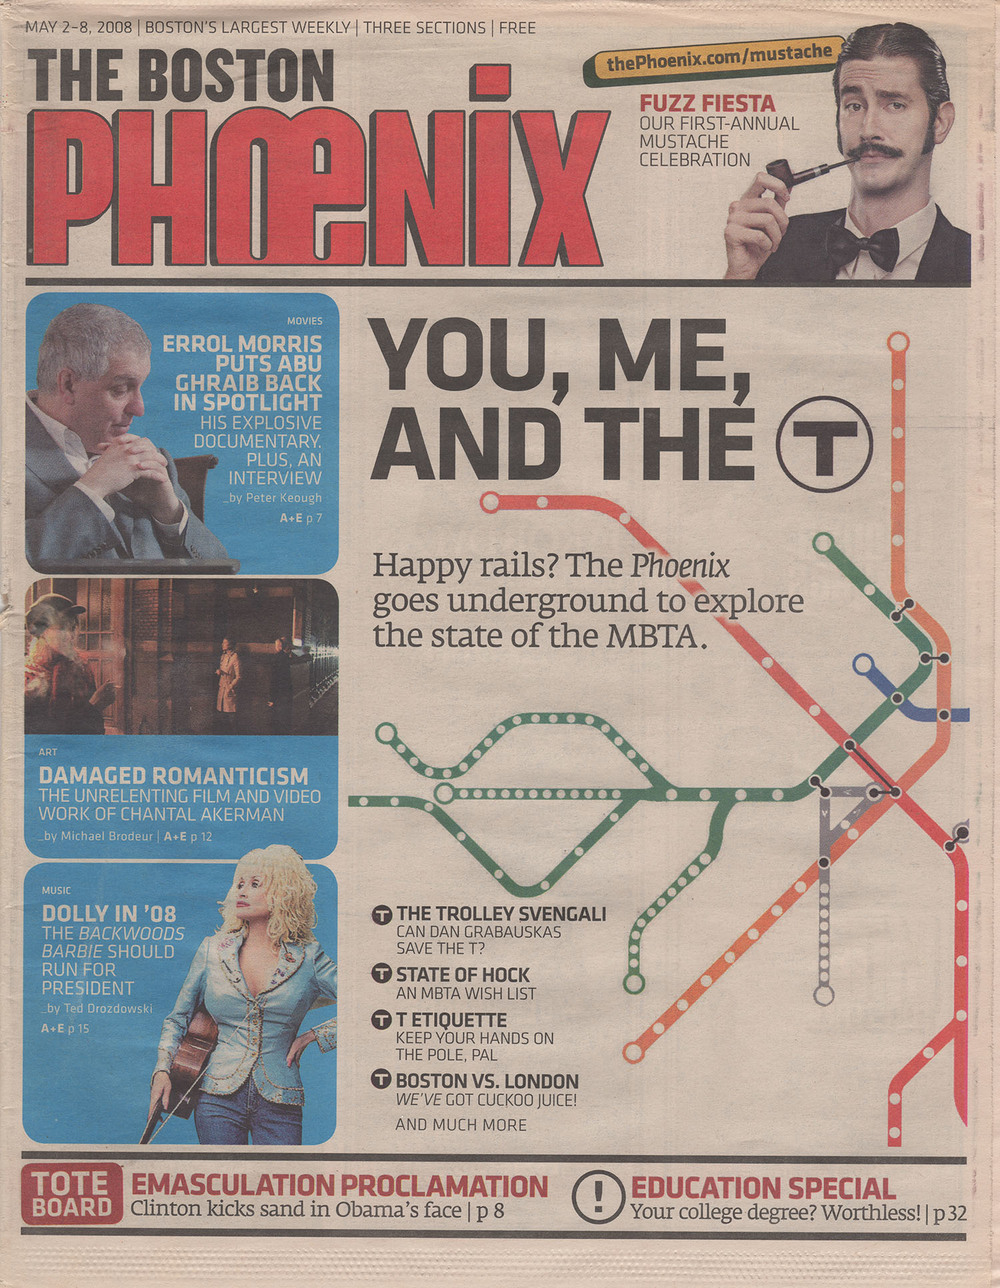 The Boston Phoenix